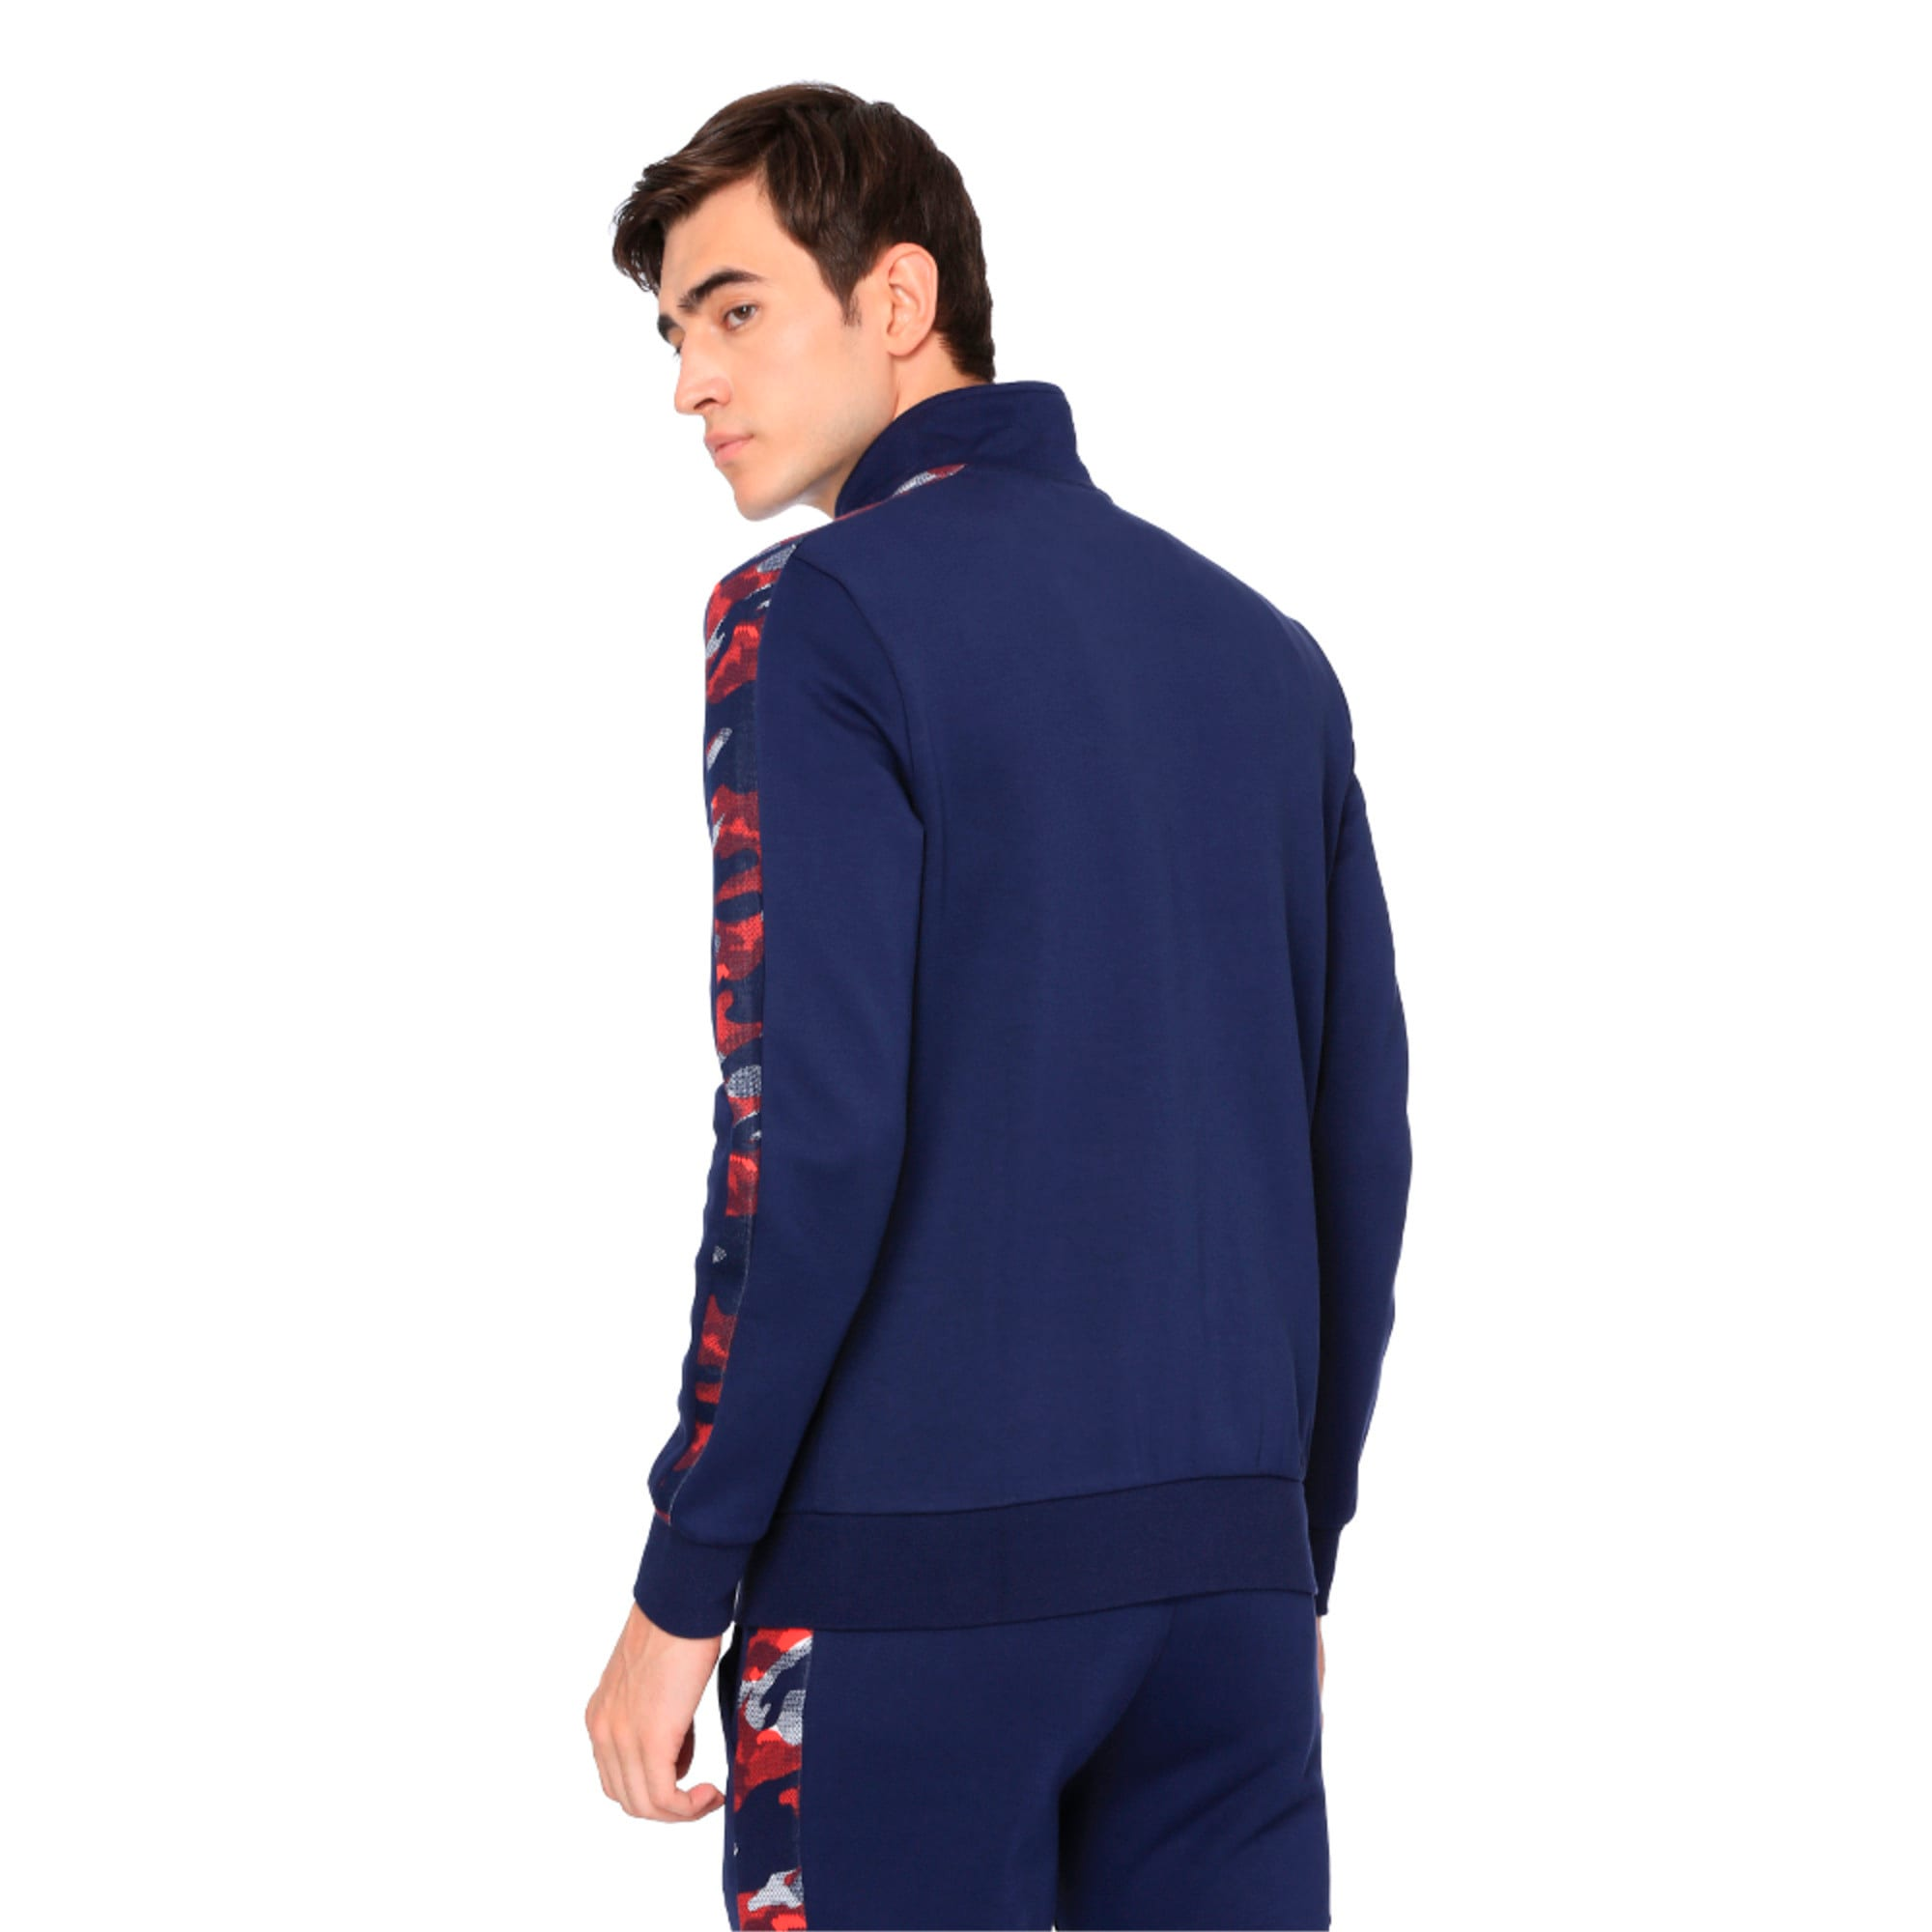 Thumbnail 5 of Classics T7 Track Jacket AOP, Peacoat, medium-IND